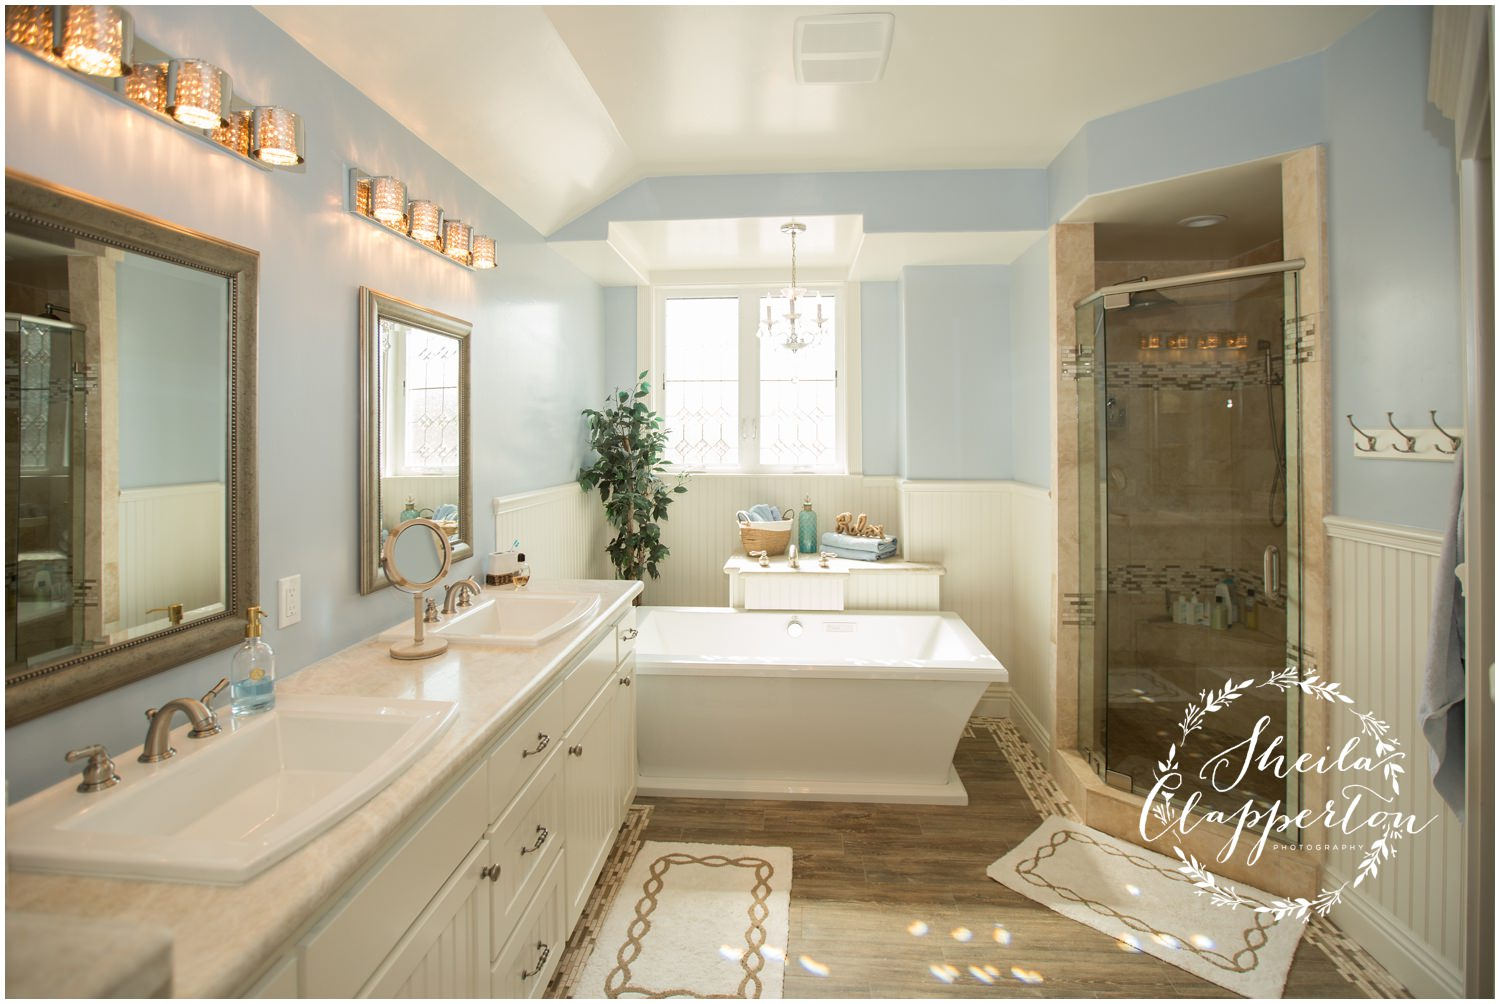 beautiful cays remodeled home